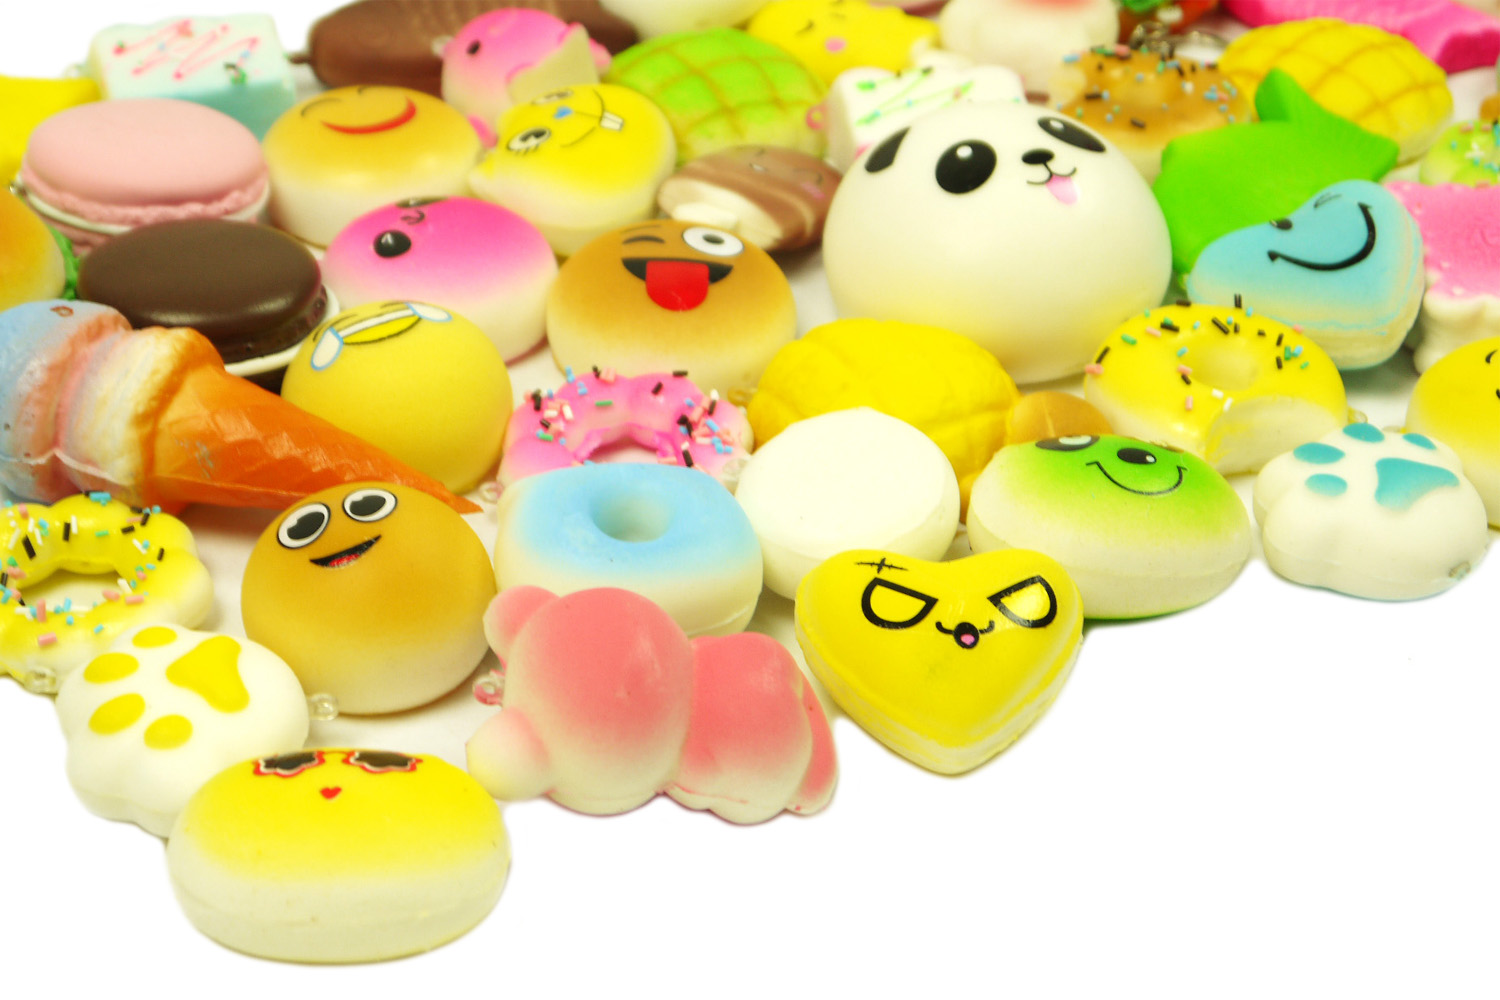 Squishy Mushy Argos : MS 12pcs Random Mini Kawaii Squishies Soft Foods Panda Donuts Cell Phone Charms eBay